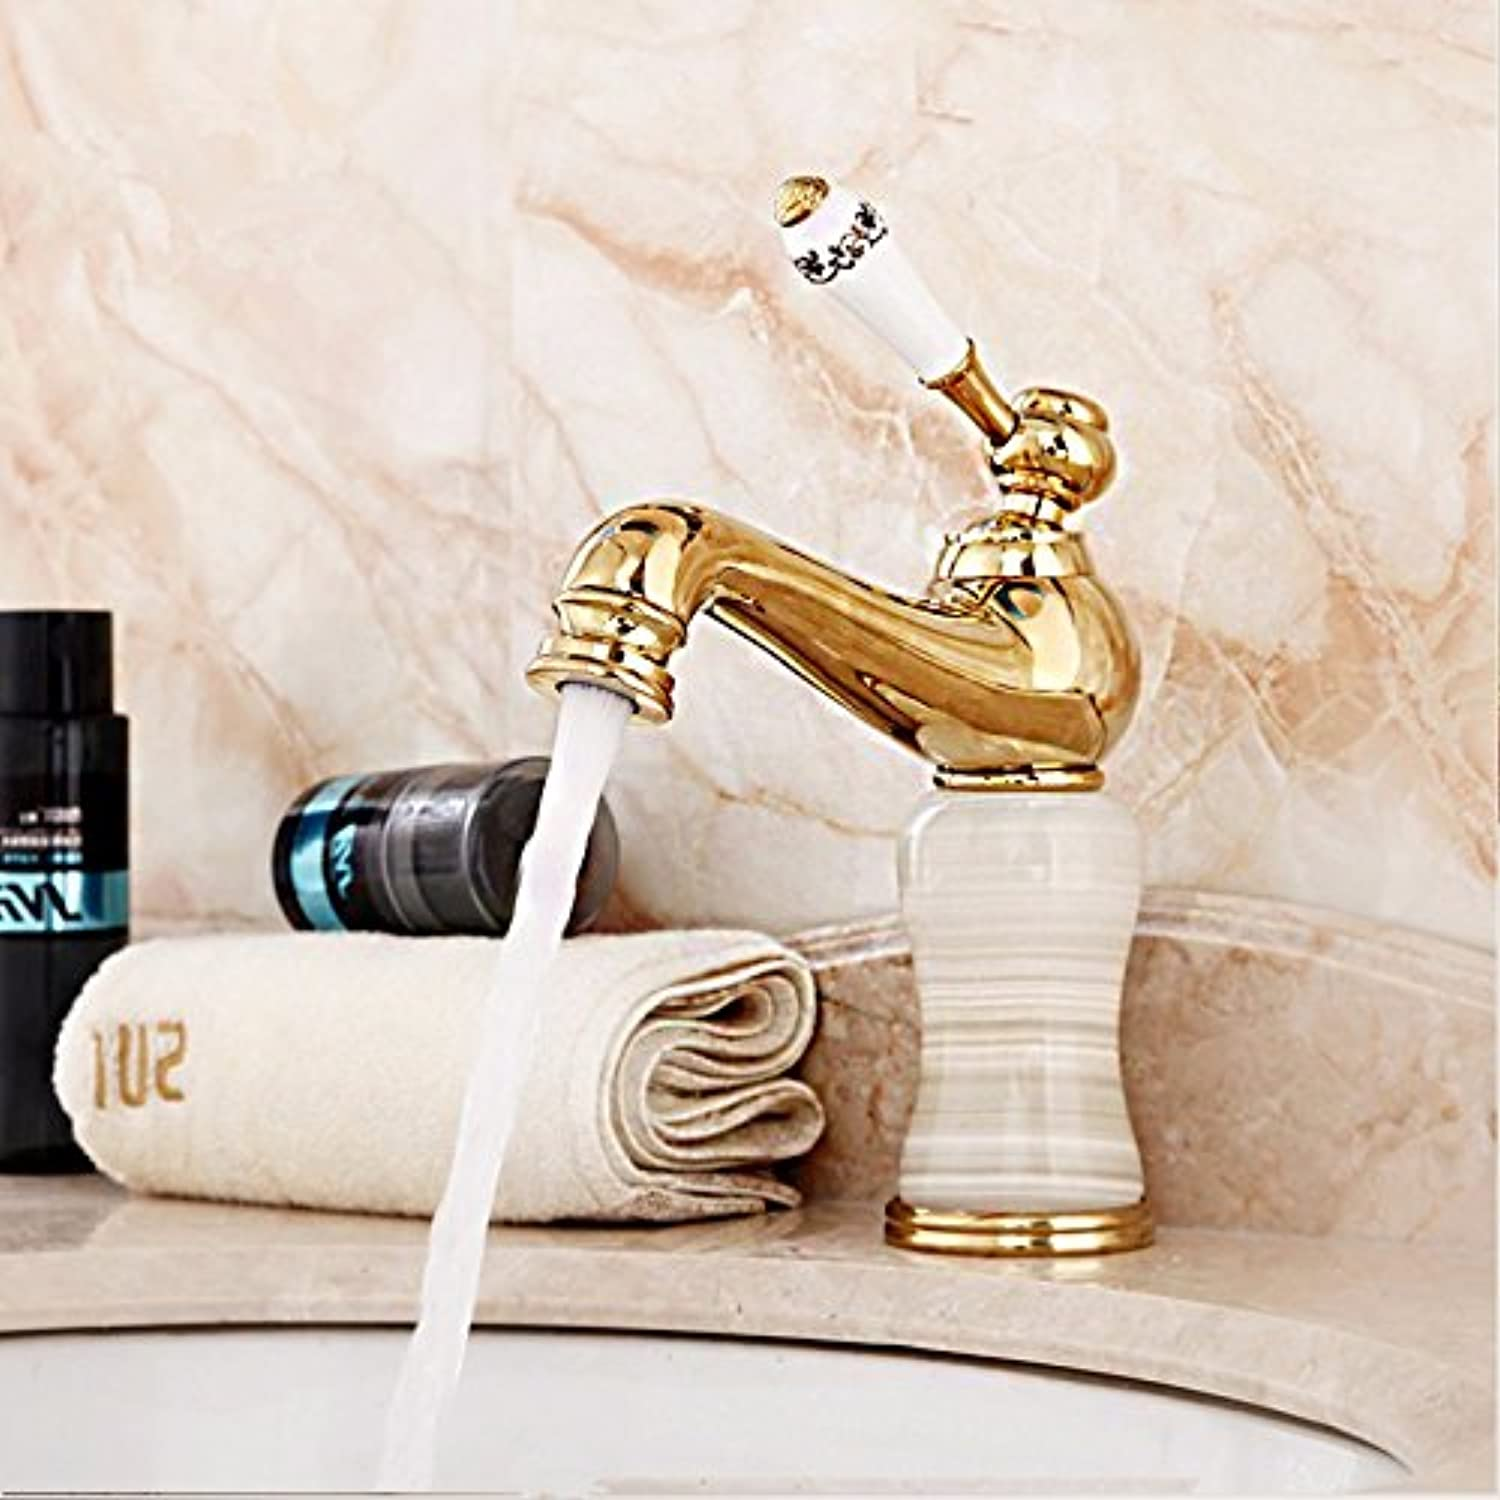 LaLF European Style Copper bluee and White Porcelain Basin Faucet Bathroom Faucet Hot and Cold Short Faucet